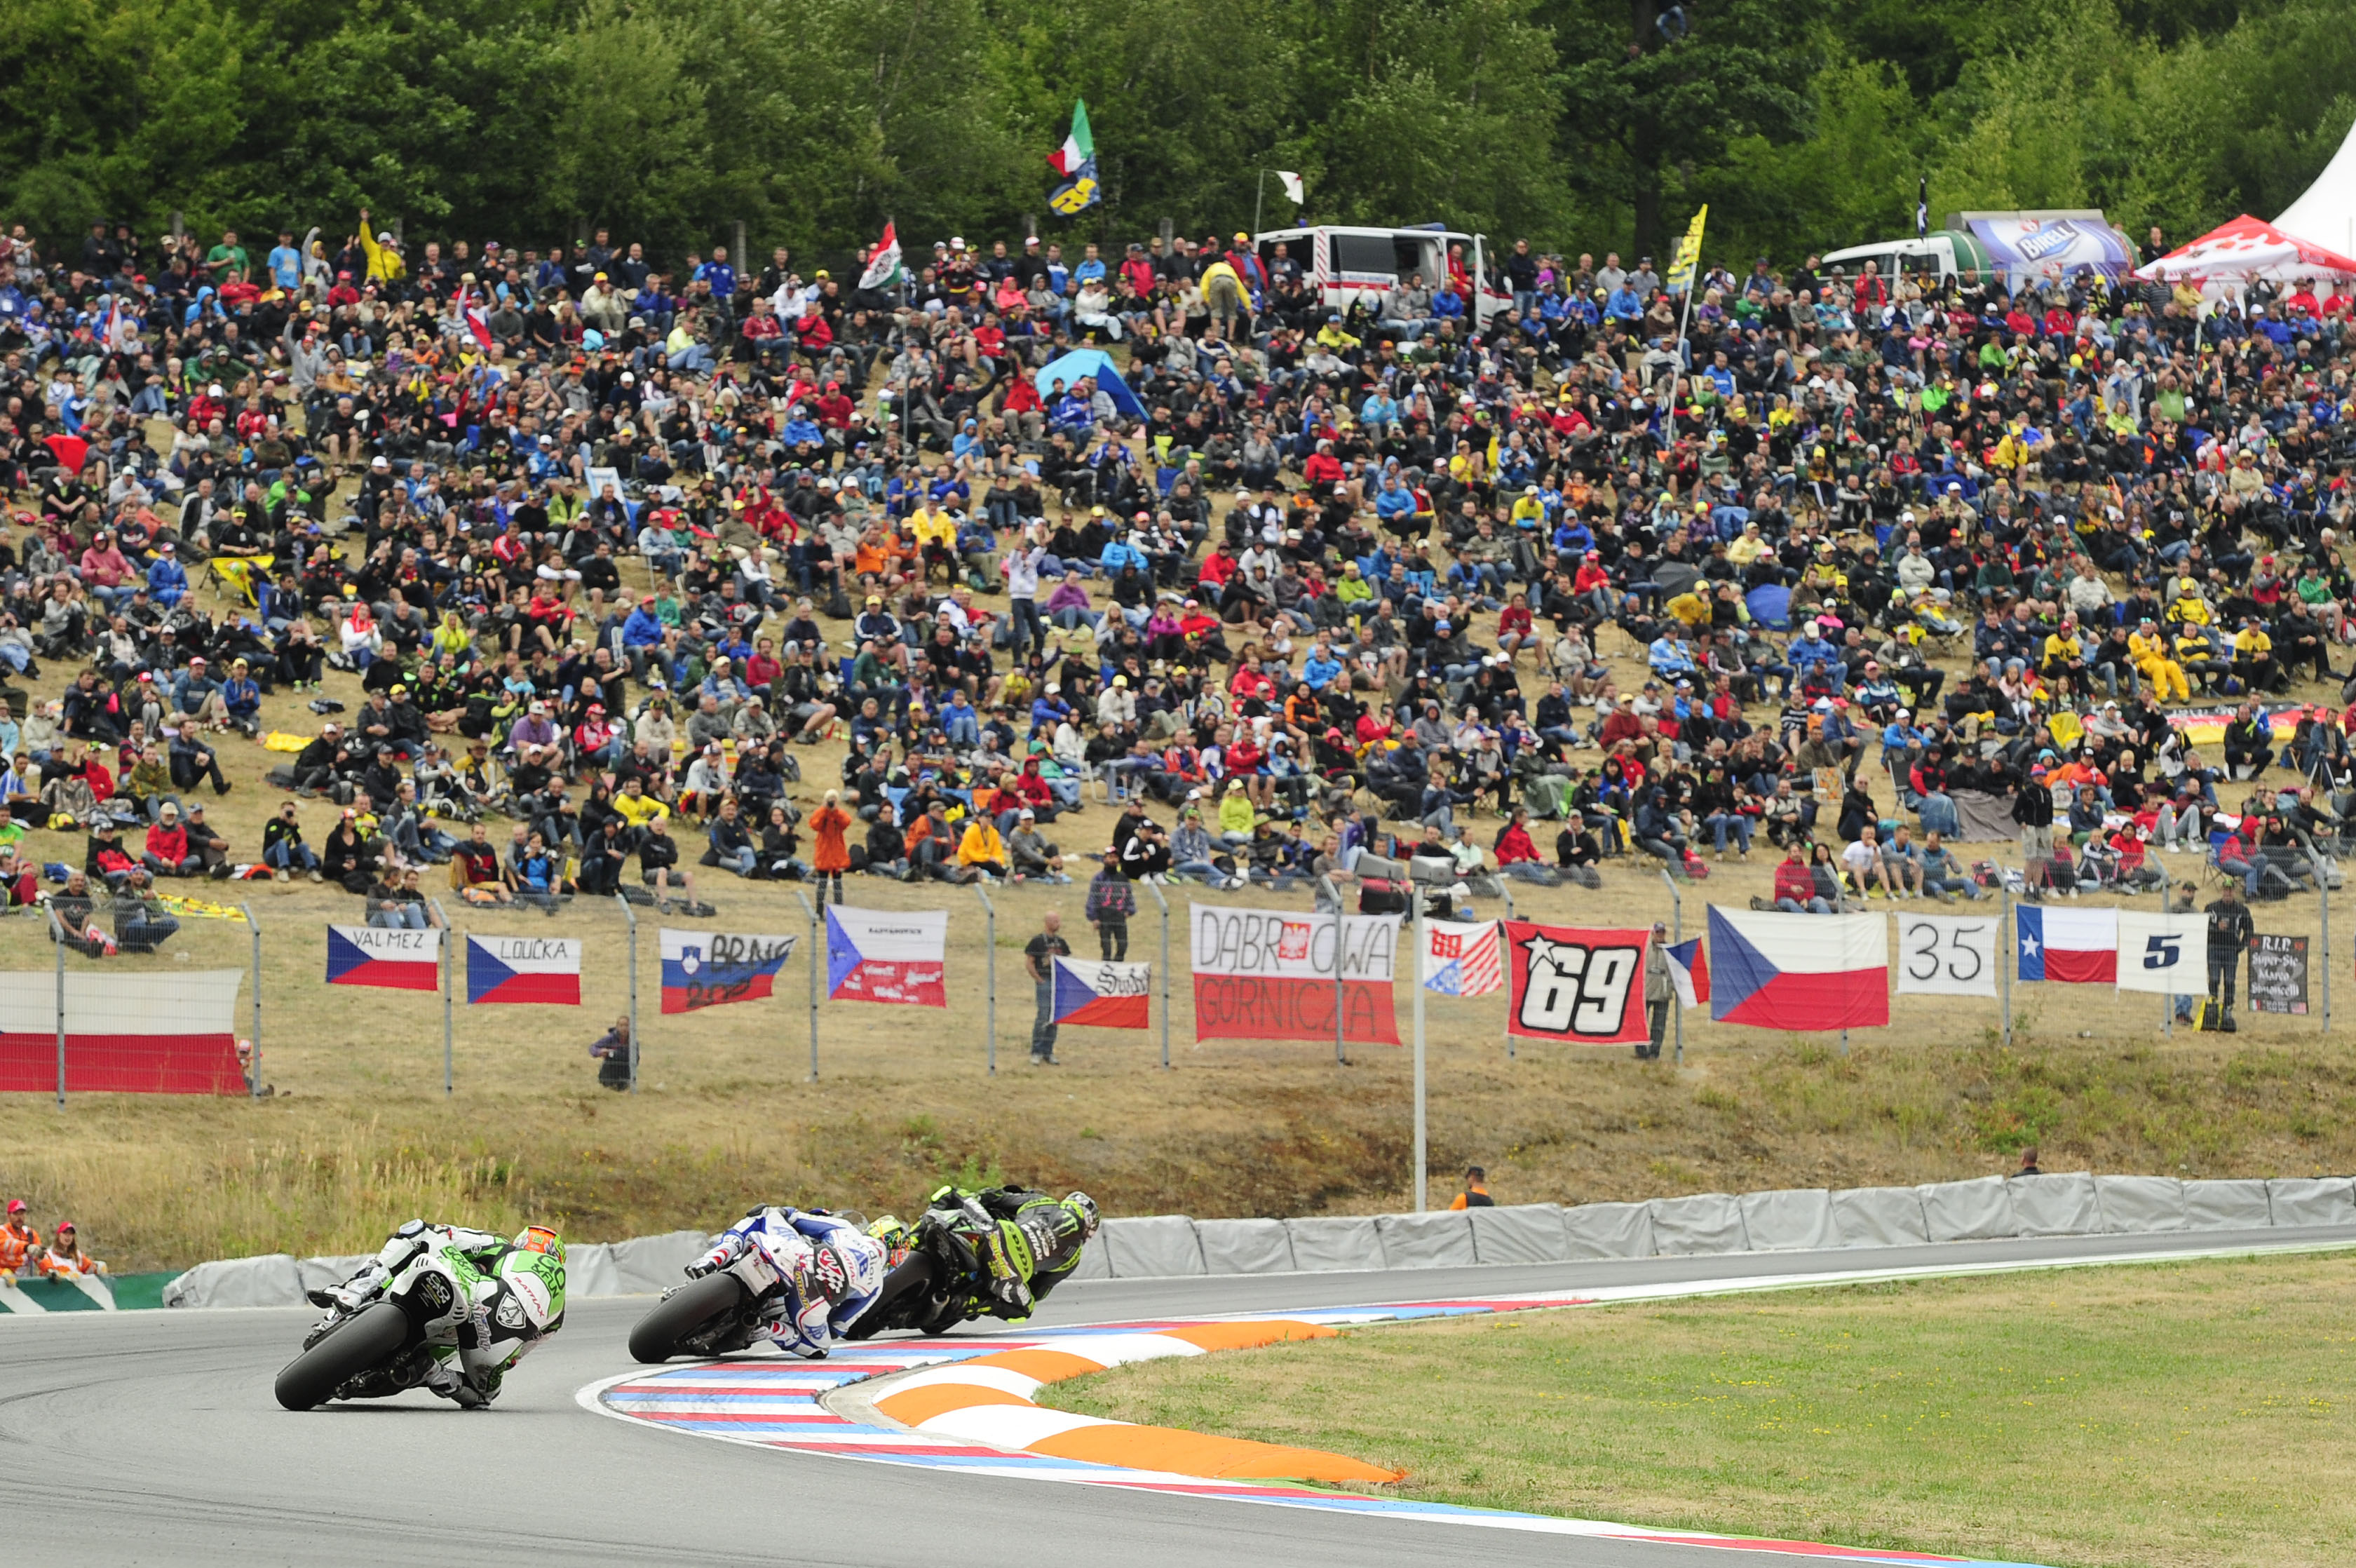 Circuito Brno Motogp : Ten fastest motogp circuits visordown